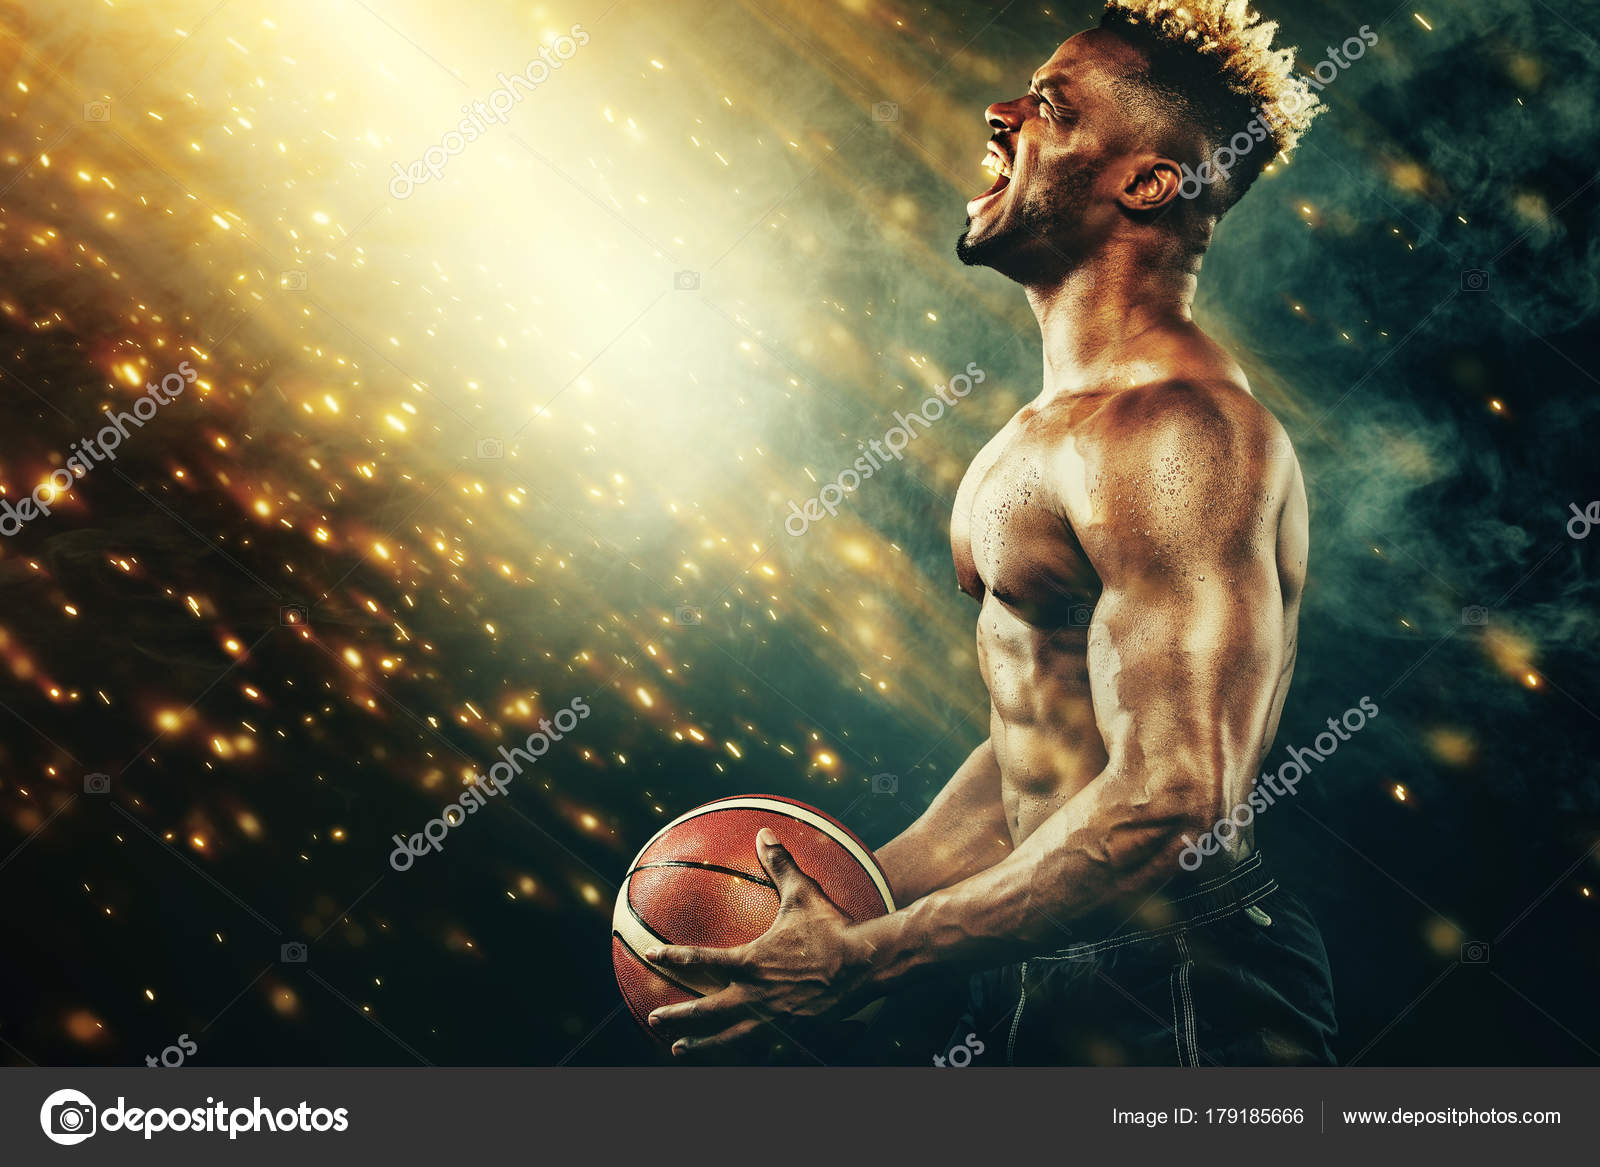 Nba Player Wallpaper Basketball Wallpaper Portrait Of Afro American Sportsman Basketball Player With A Ball Over Black Background Fit Young Man In Sportswear Holding Ball Stock Photo C Mikeorlov 179185666